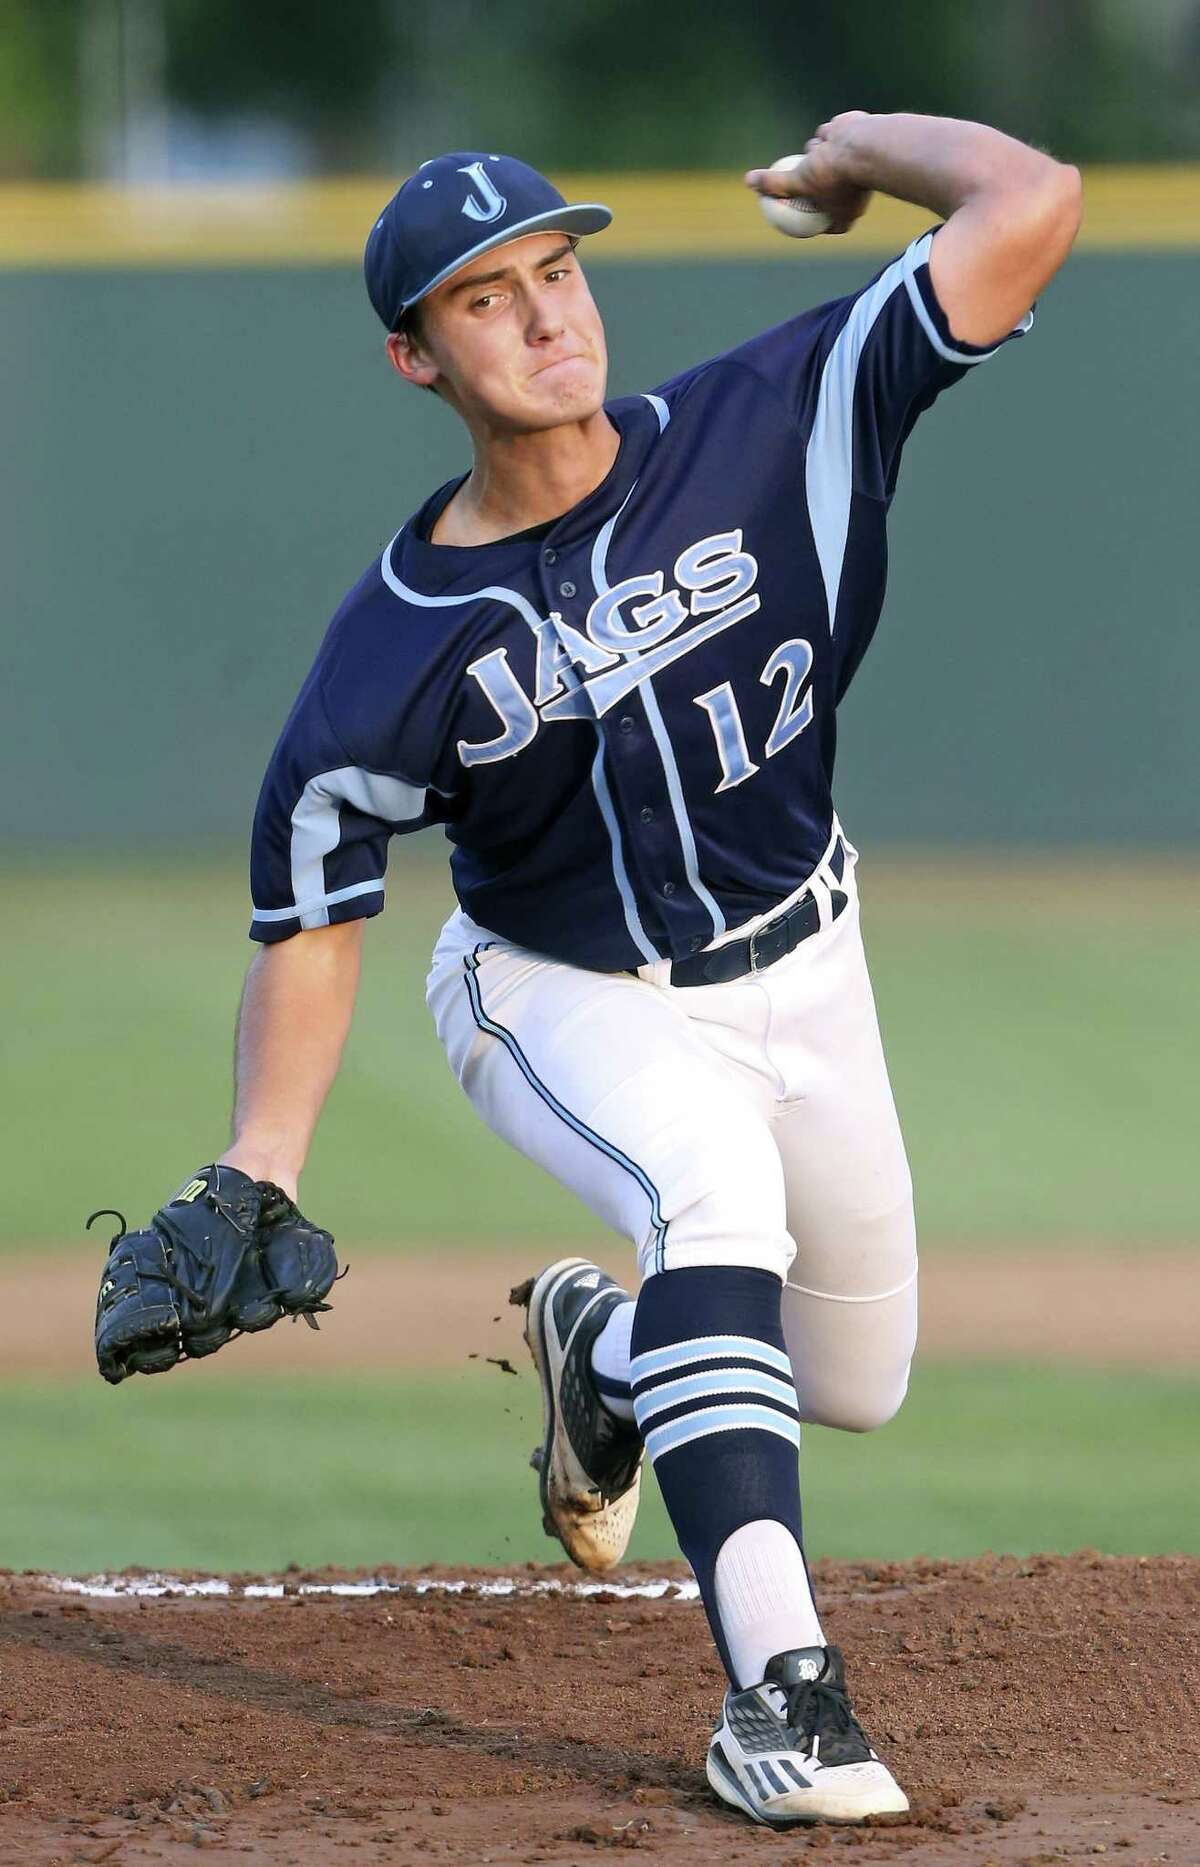 Johnson's Richie Gilbert pitches against O'Connor in Class 6A second round playoff action at Alamo Heights on May 11, 2017.